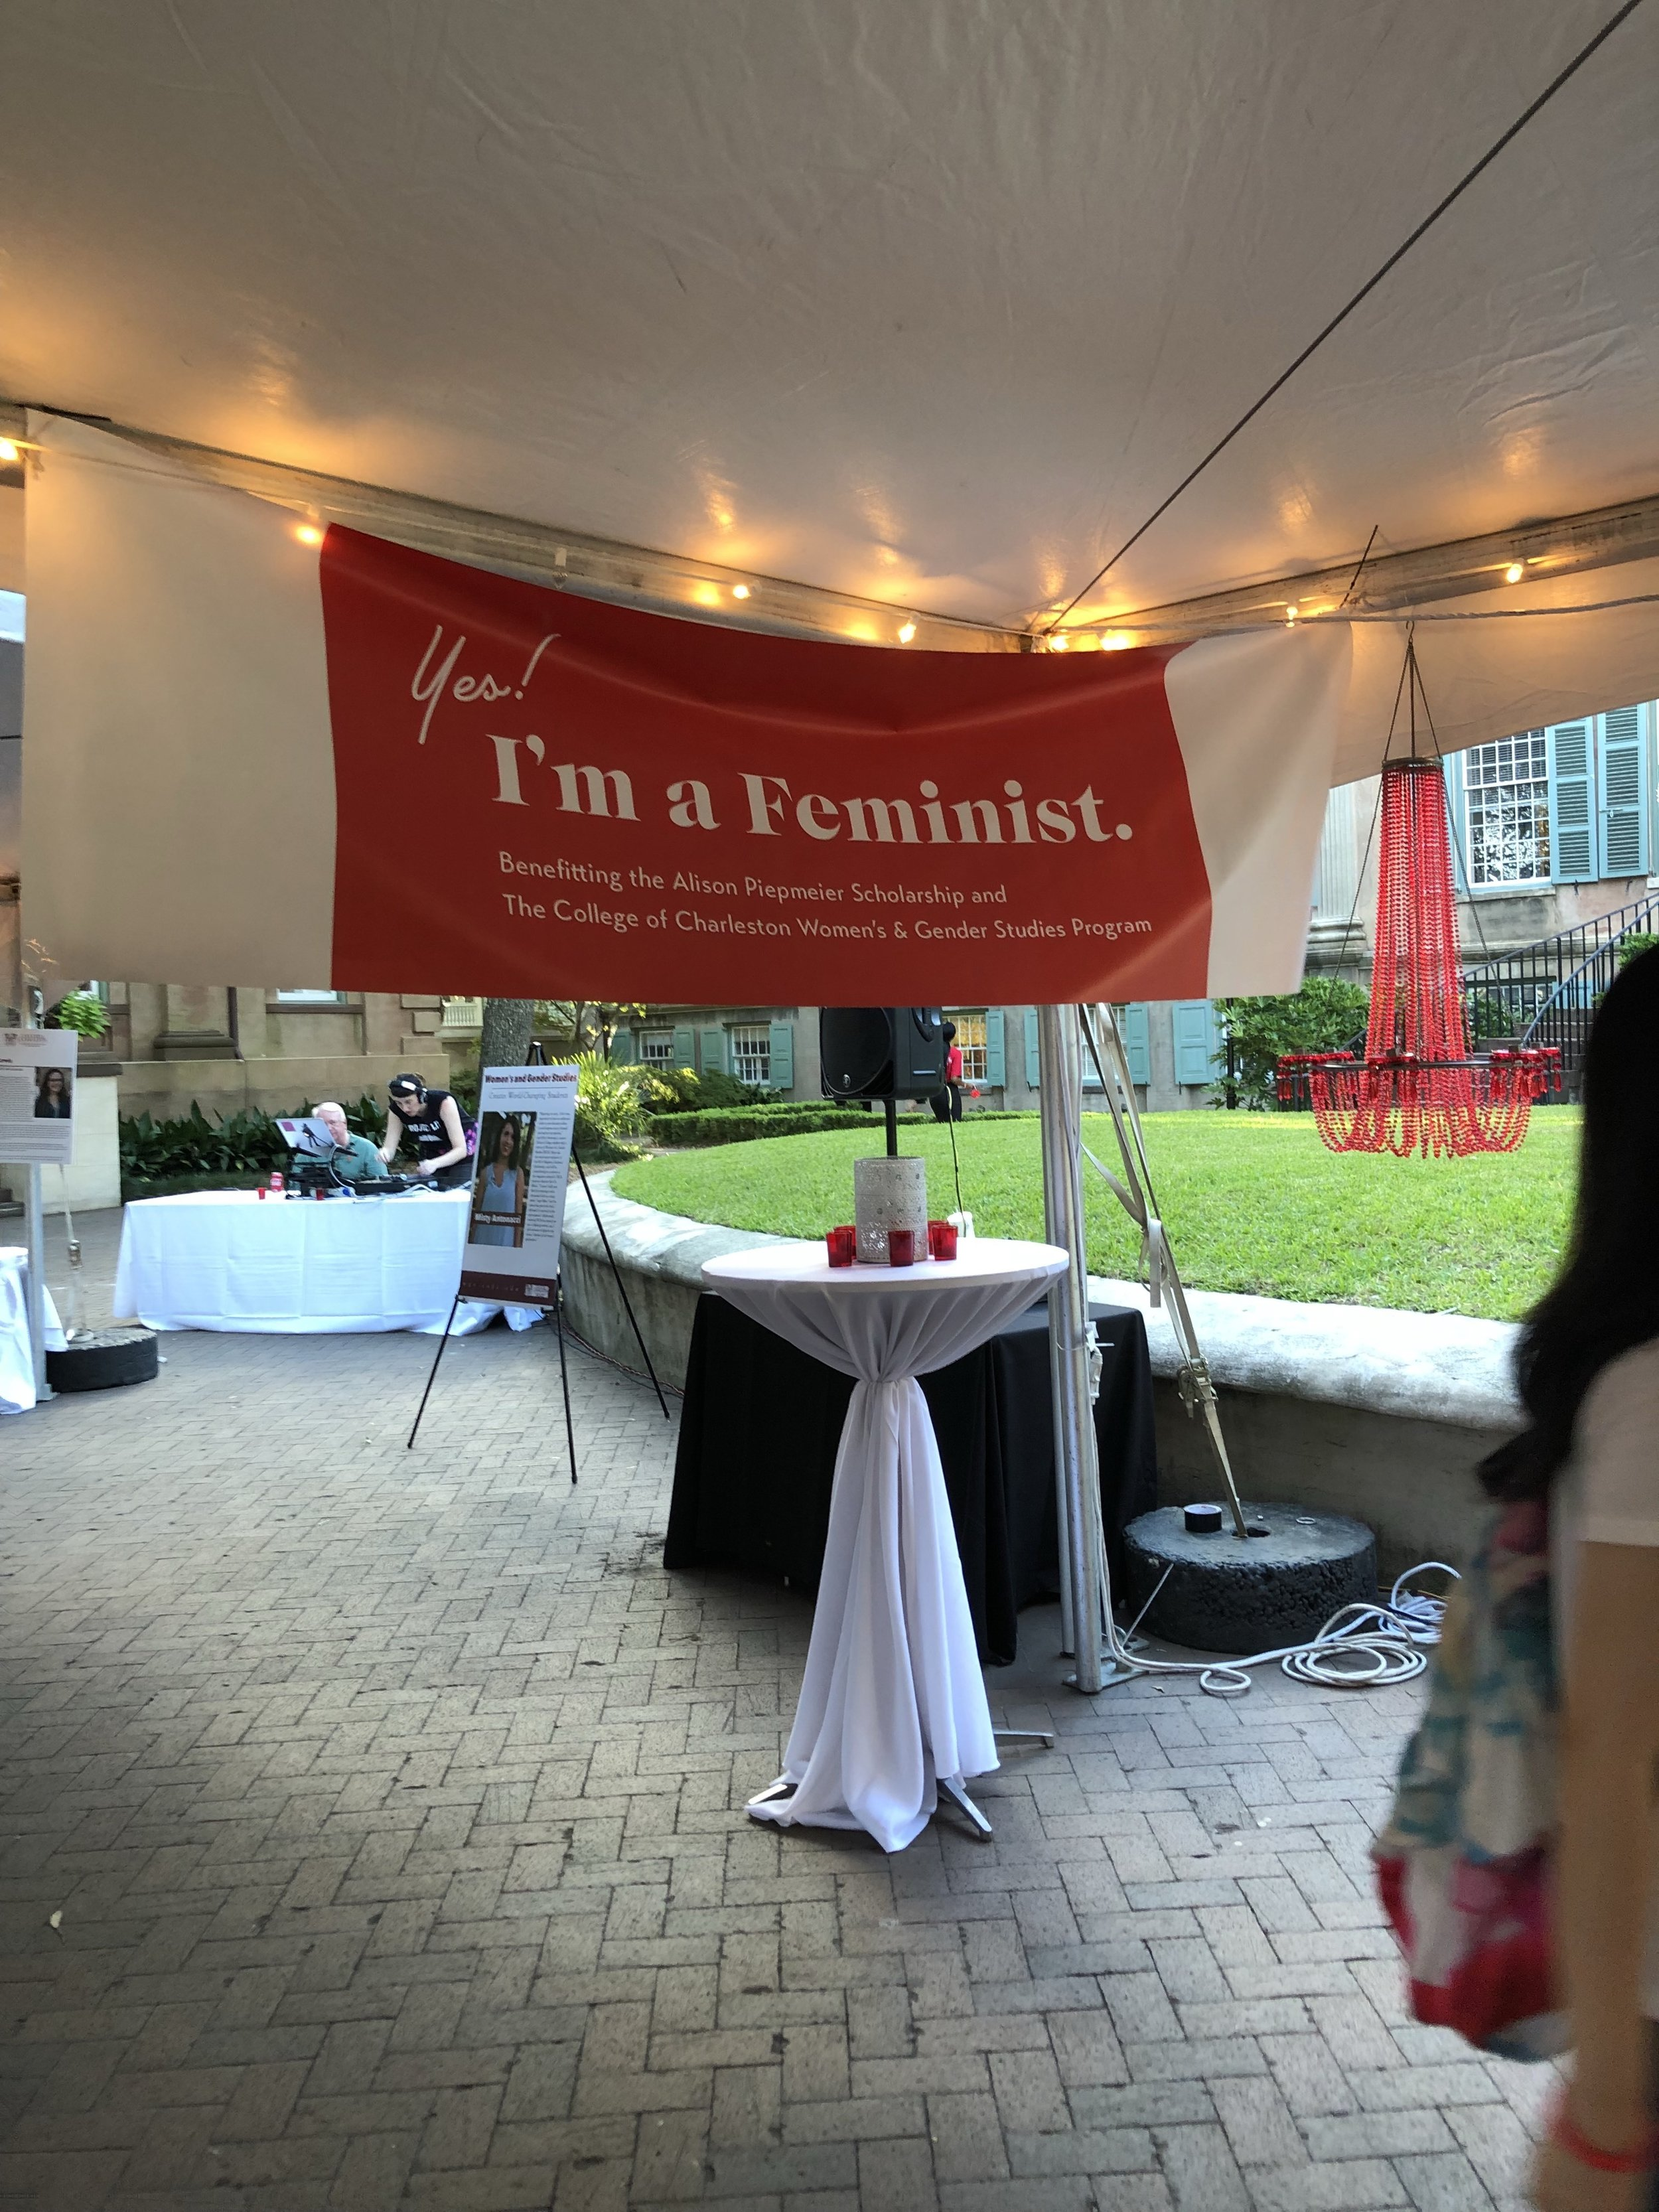 The College's Women's and Gender Studies (WGST) program held its sixth Yes! I'm a Feminist event in the Cistern Yard. Photo credits to Grey Parsons.